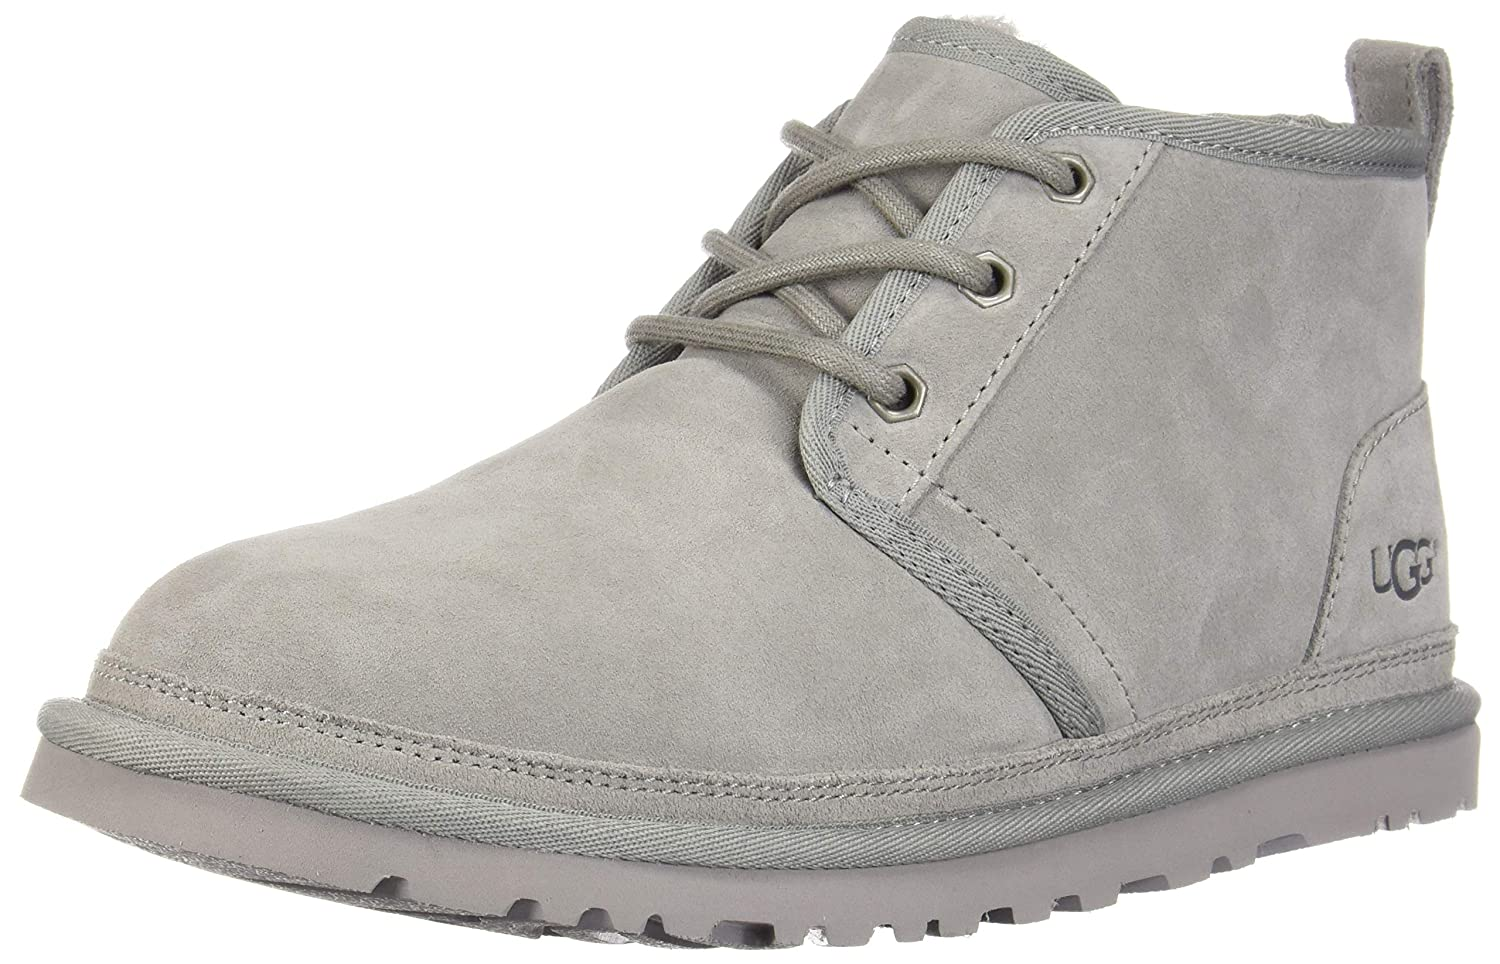 Ugg Australia Neumel Antilope Women's Shoes Shearling